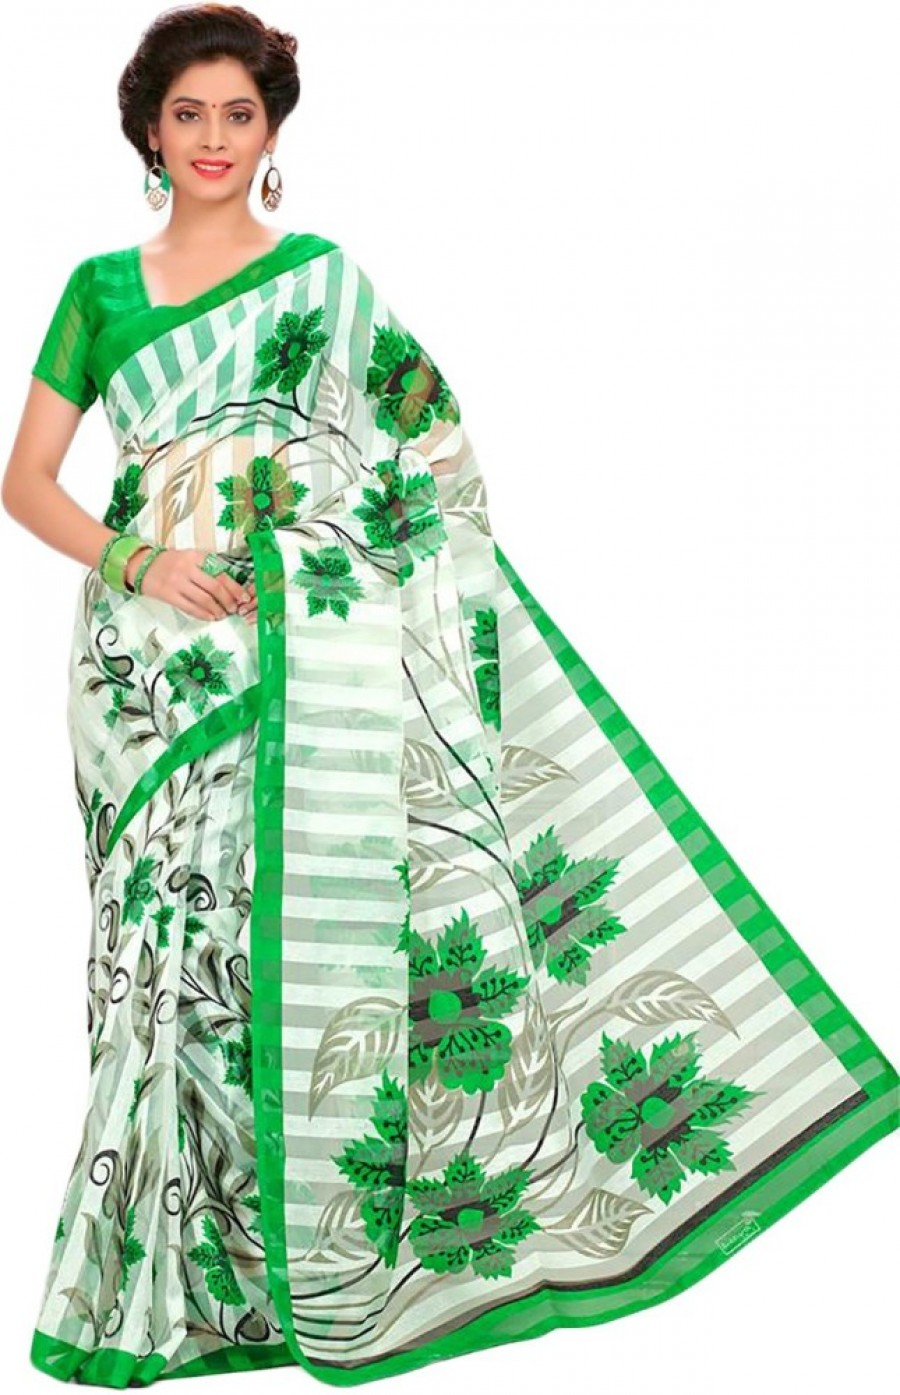 Buy Shree Vaishnavi fashion Printed Bhagalpuri Brasso, Cotton Linen Blend Sari Online